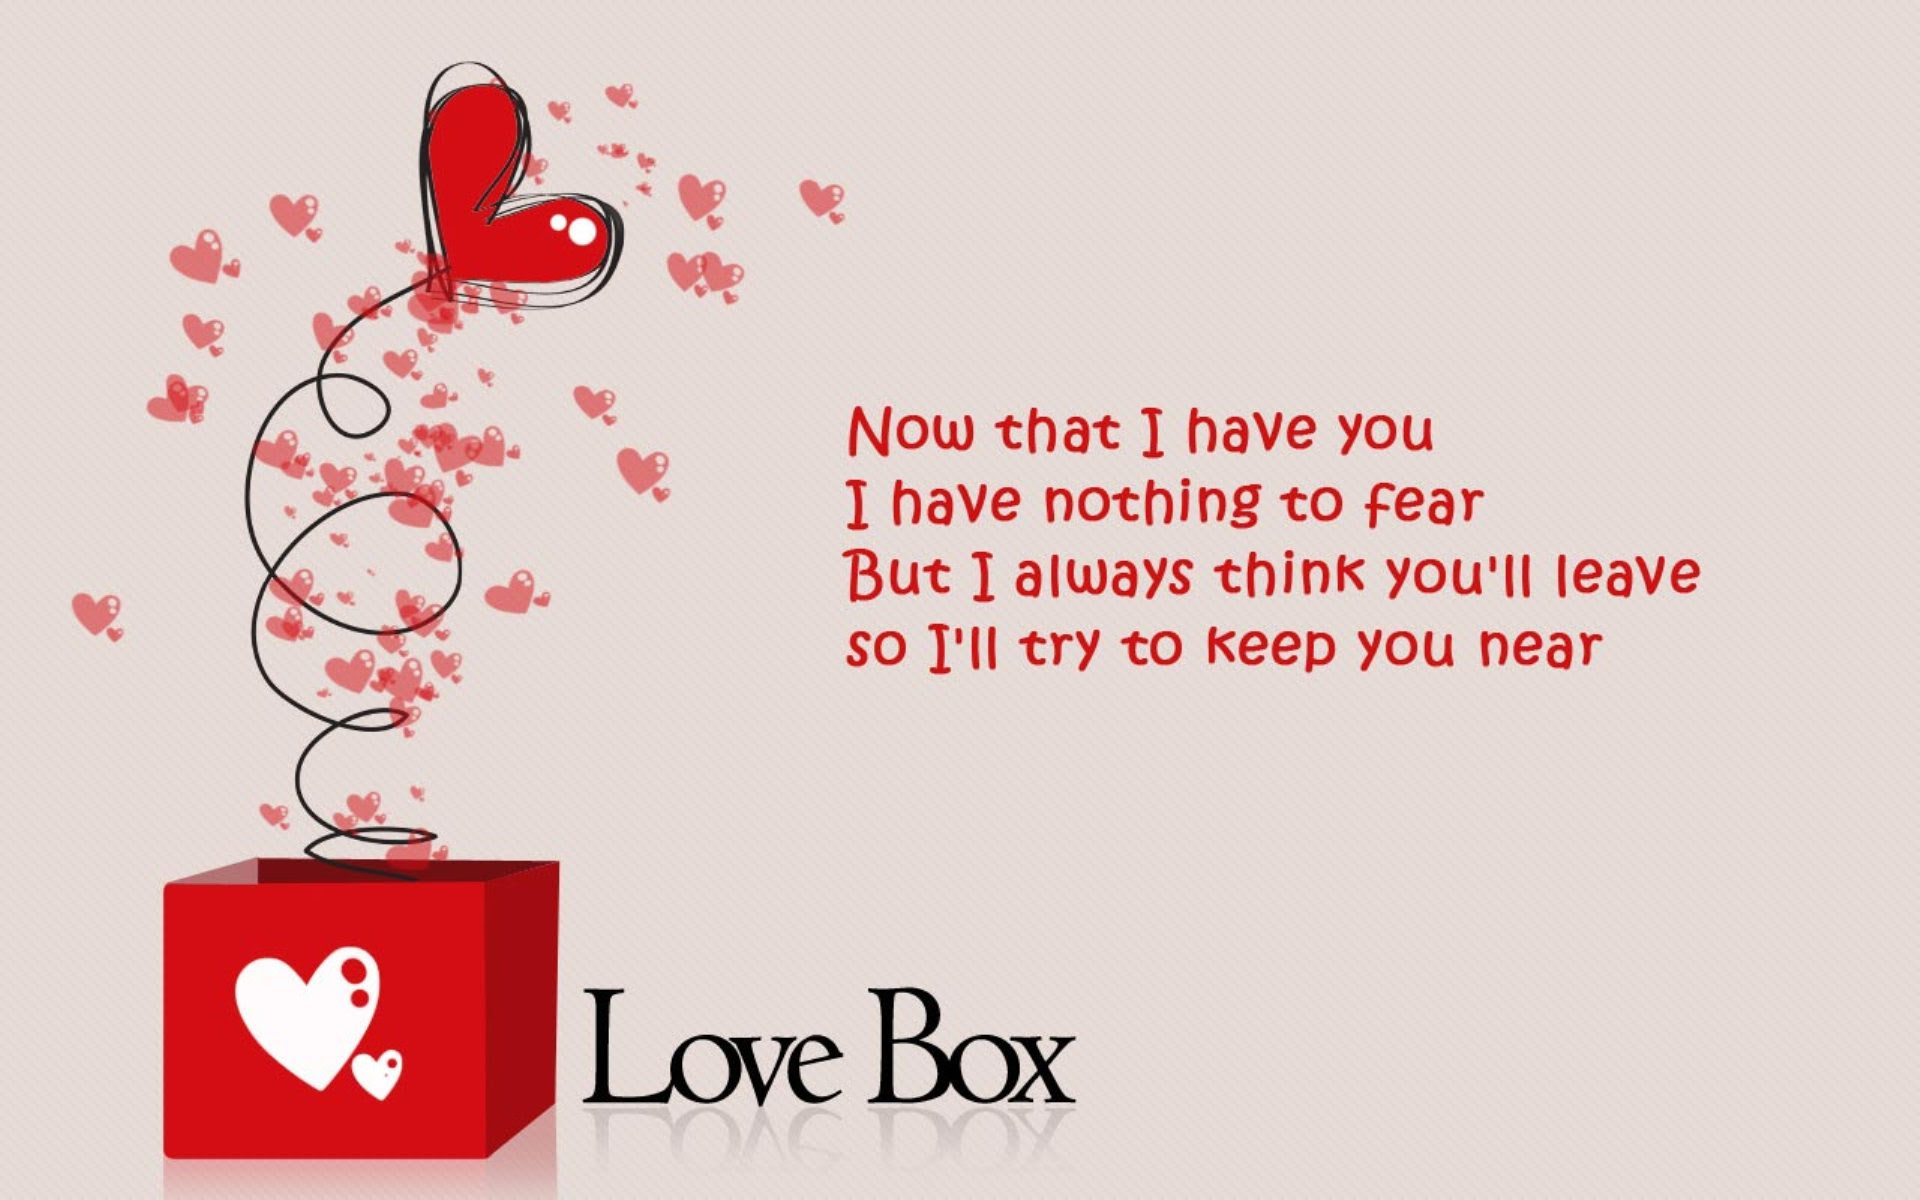 11 Awesome And Cutest Love Poems For Him - Awesome 11